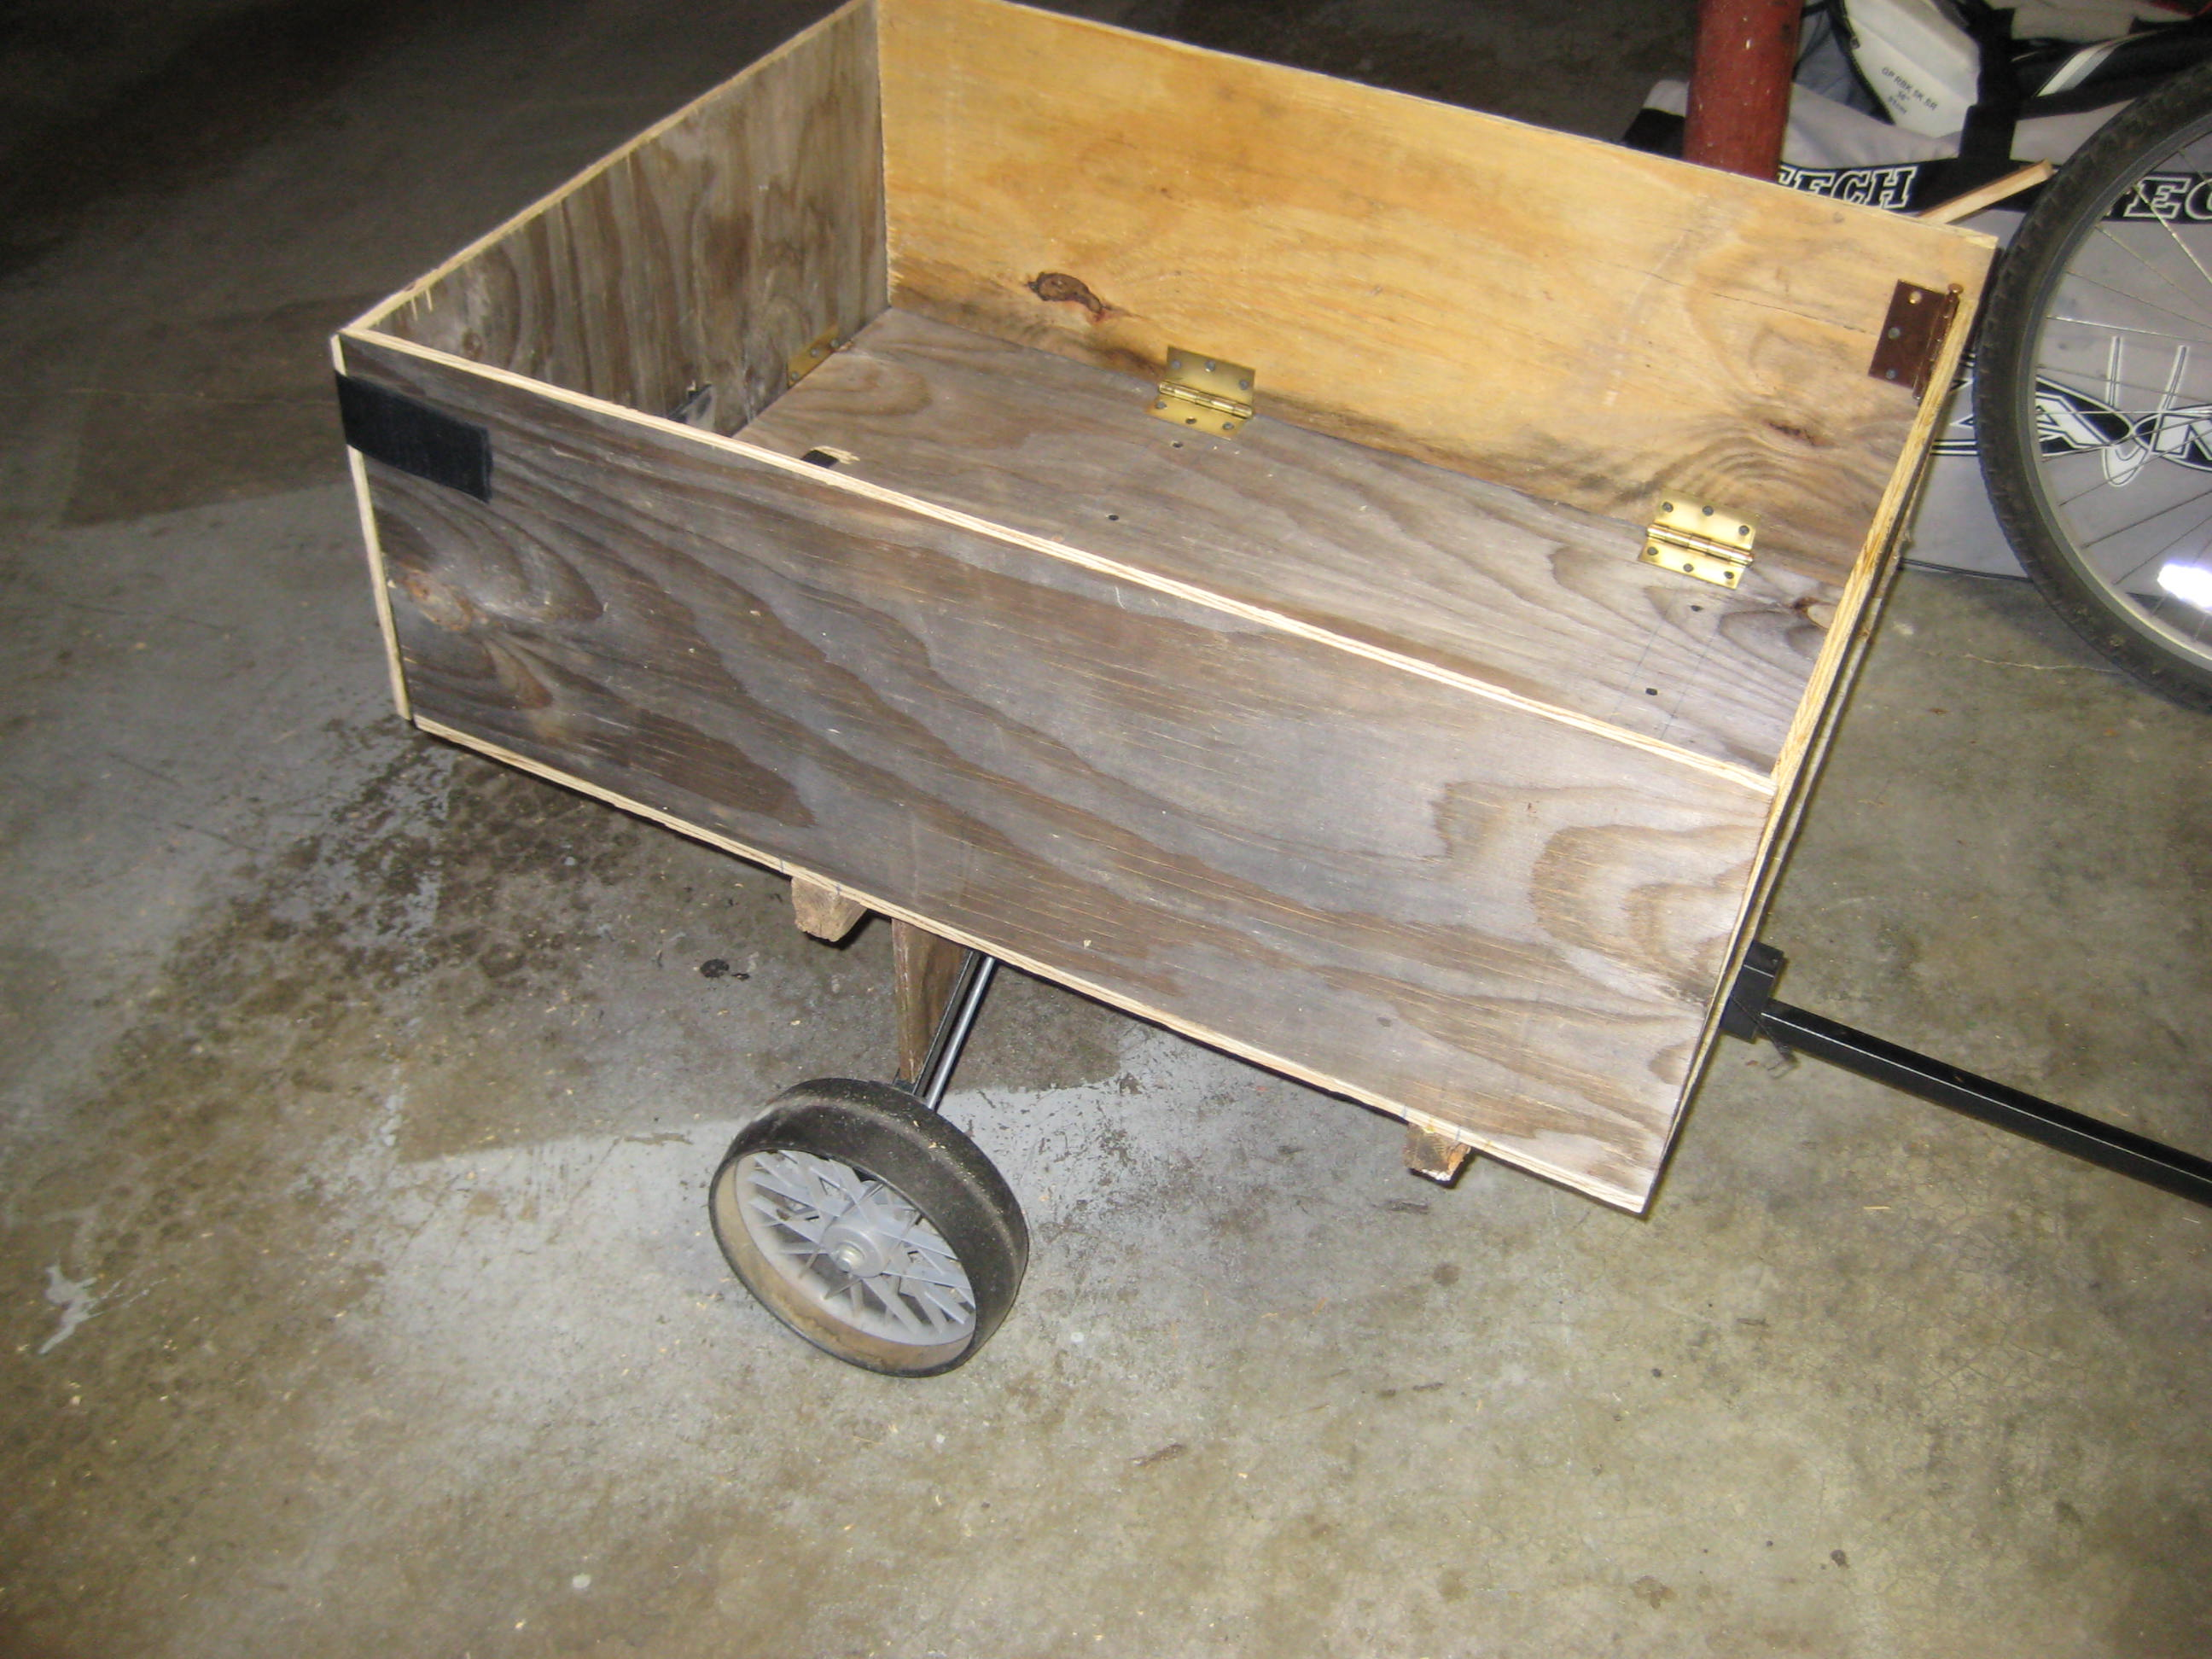 Yard Cart (Wagon) for Hand or Tractor Use from Golf Cart.